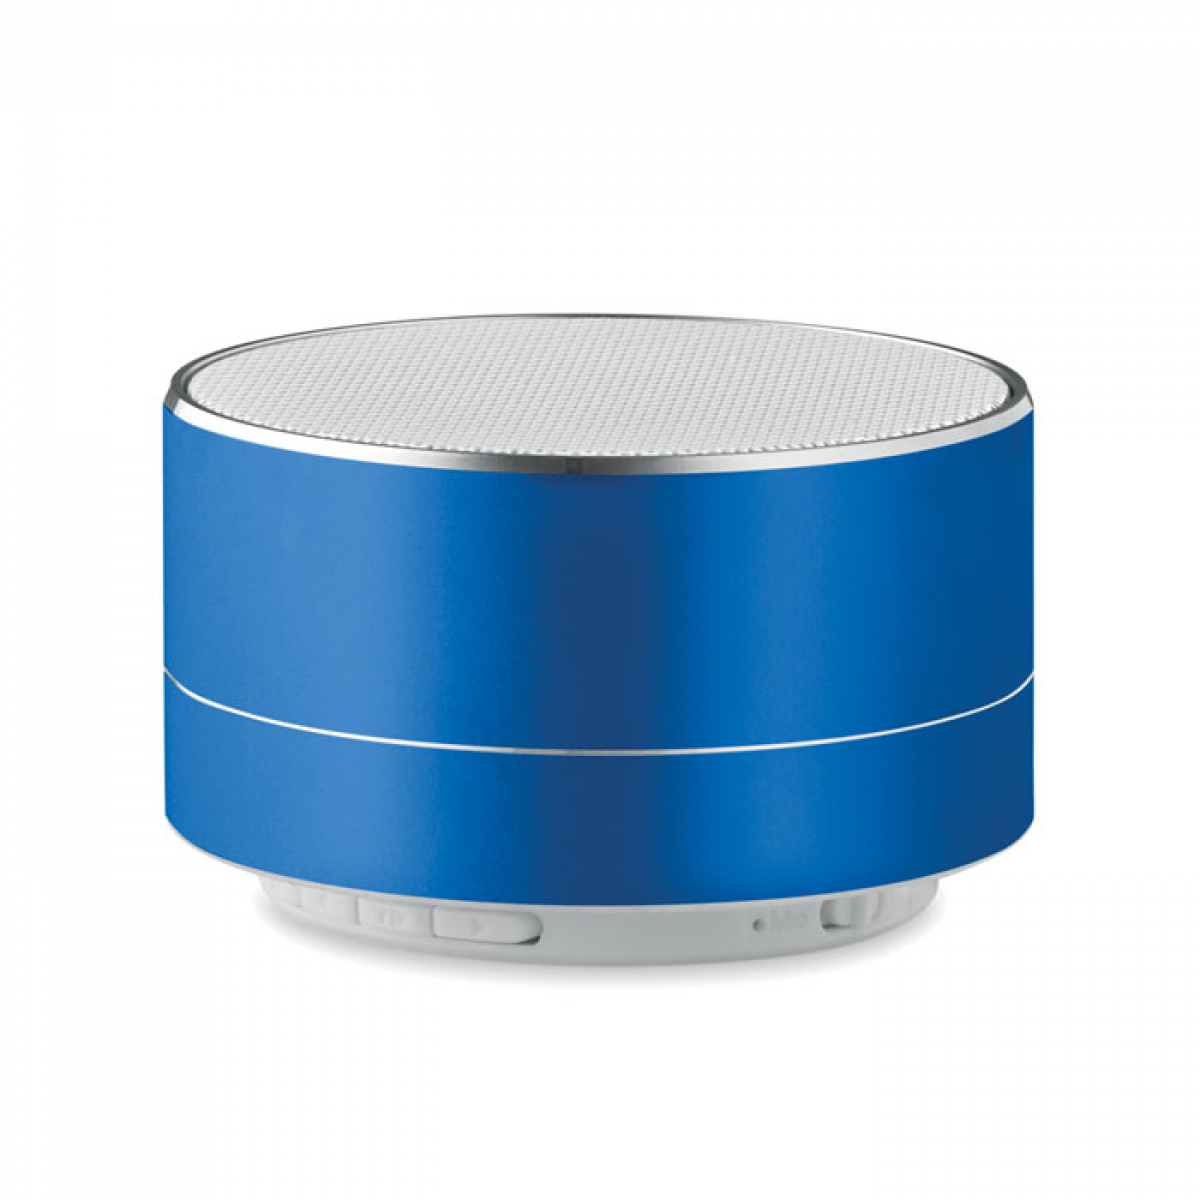 Speaker | Bluetooth | Aluminium | Micro USB-kabel